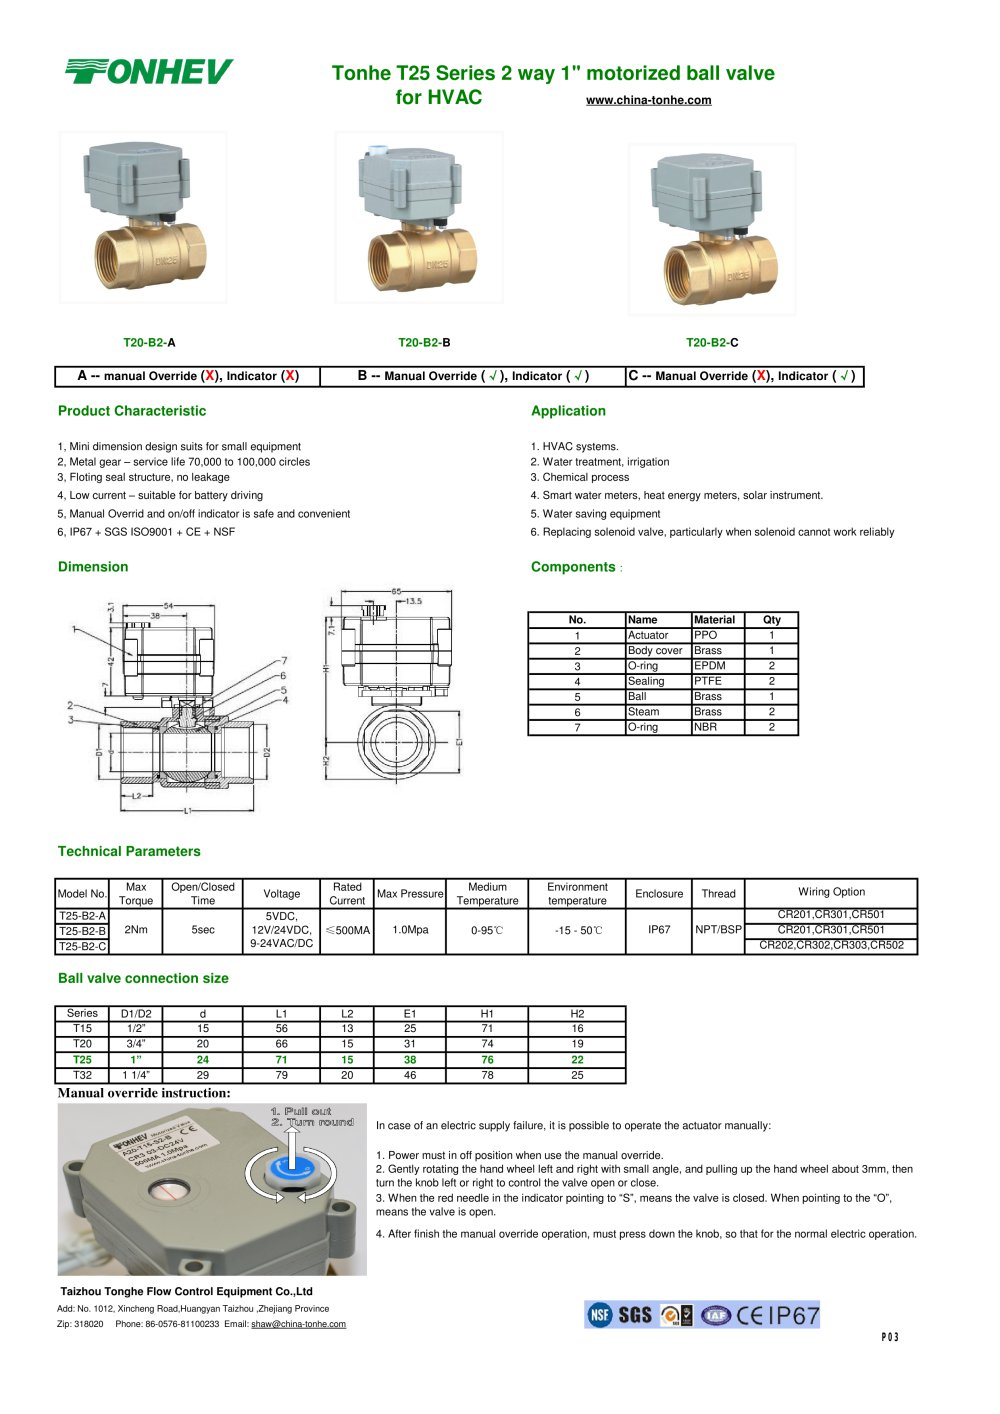 medium resolution of tonhe t25 series 2 way 1 motorized ball valve for hvac 1 1 pages